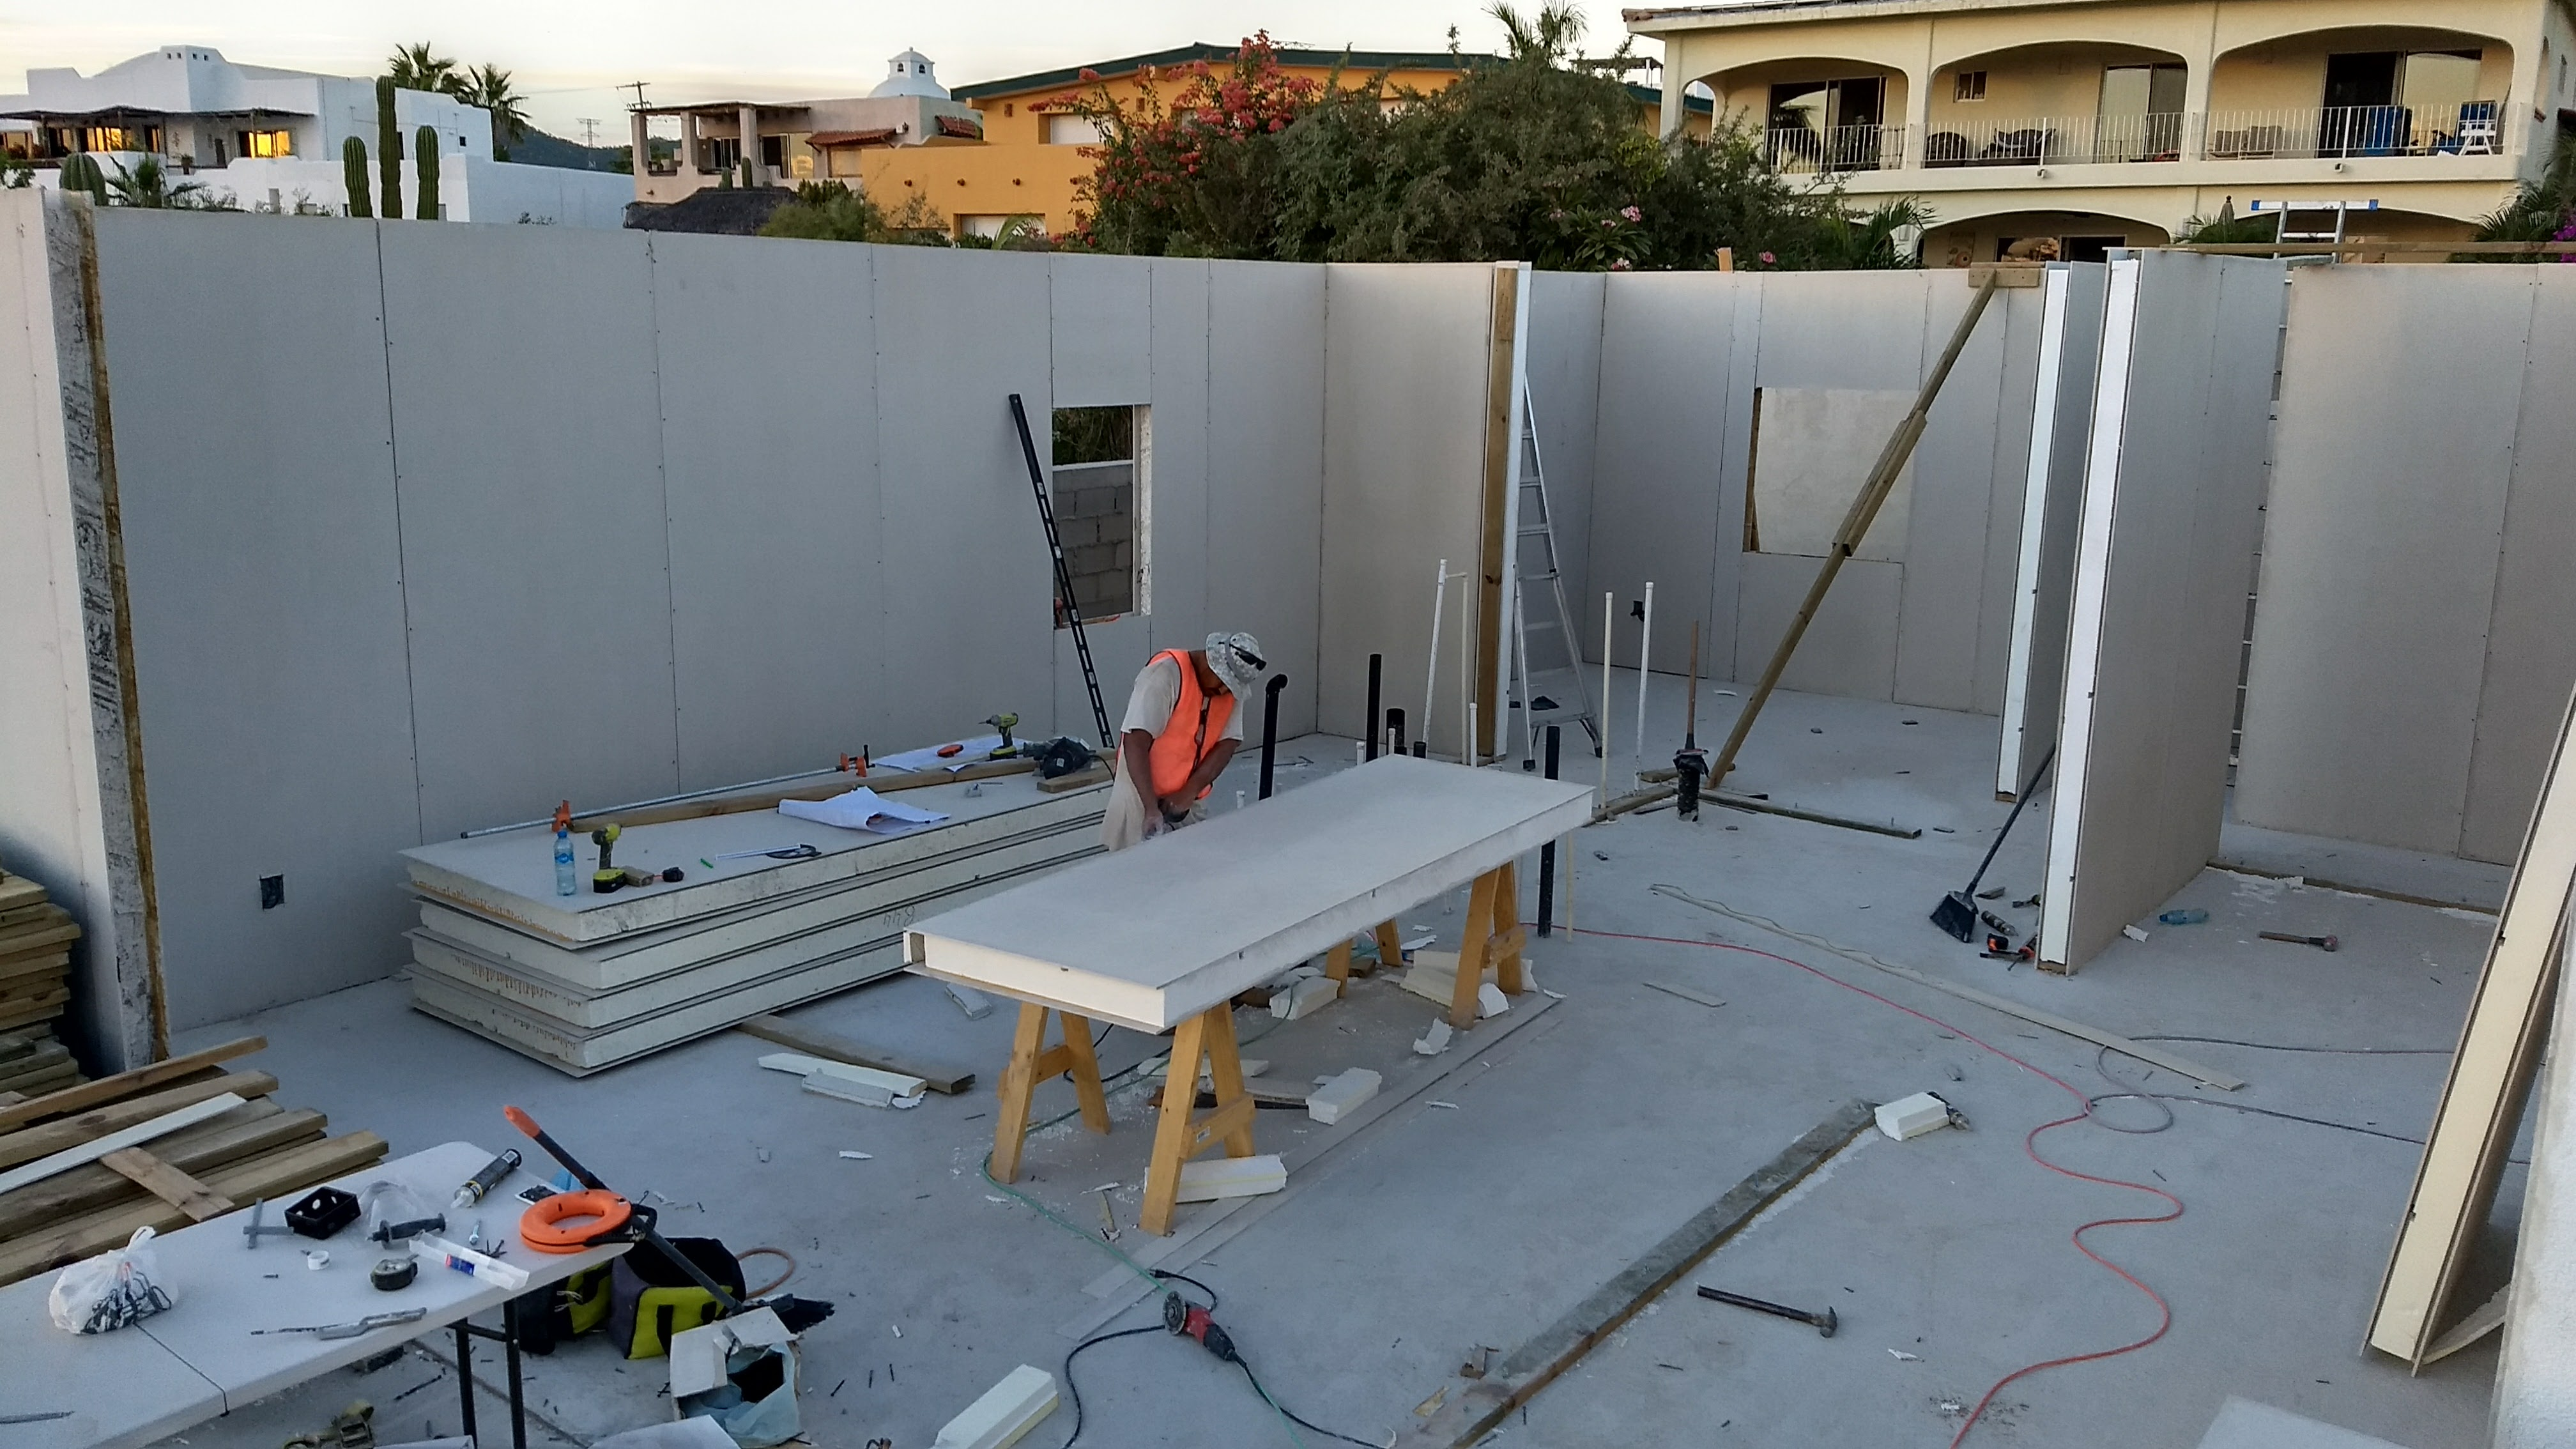 Walls go up quickly and securely